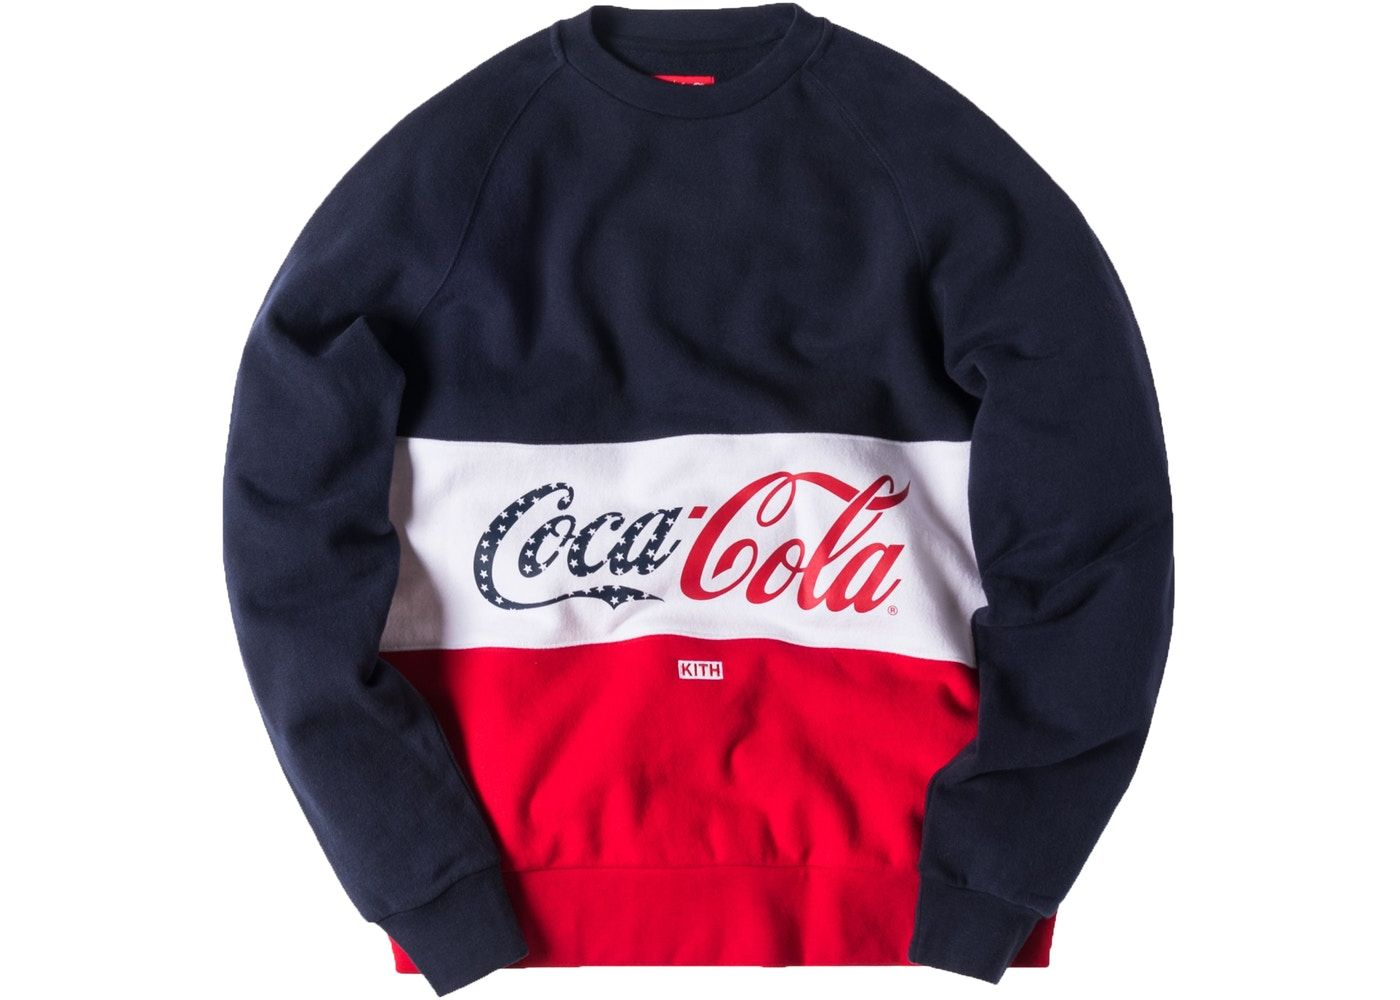 5affa7a6 Kith Coca Cola Paneled Crewneck Red/White/Navy | Gunning in 2019 ...